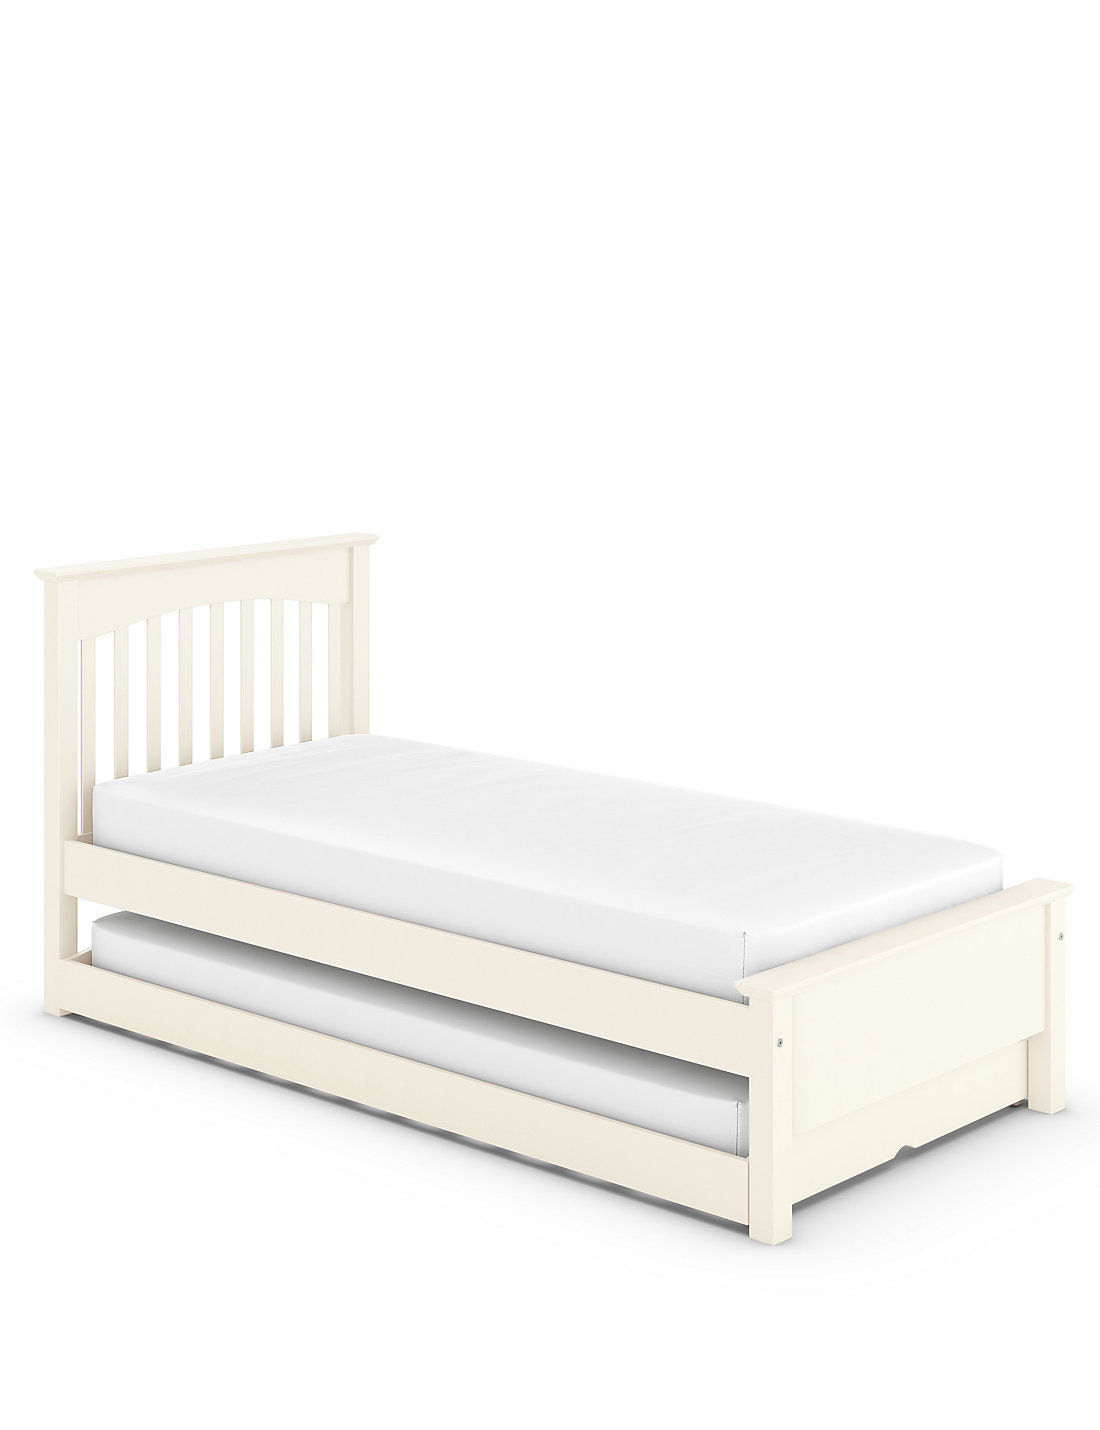 Hastings Bunk Beds From M S